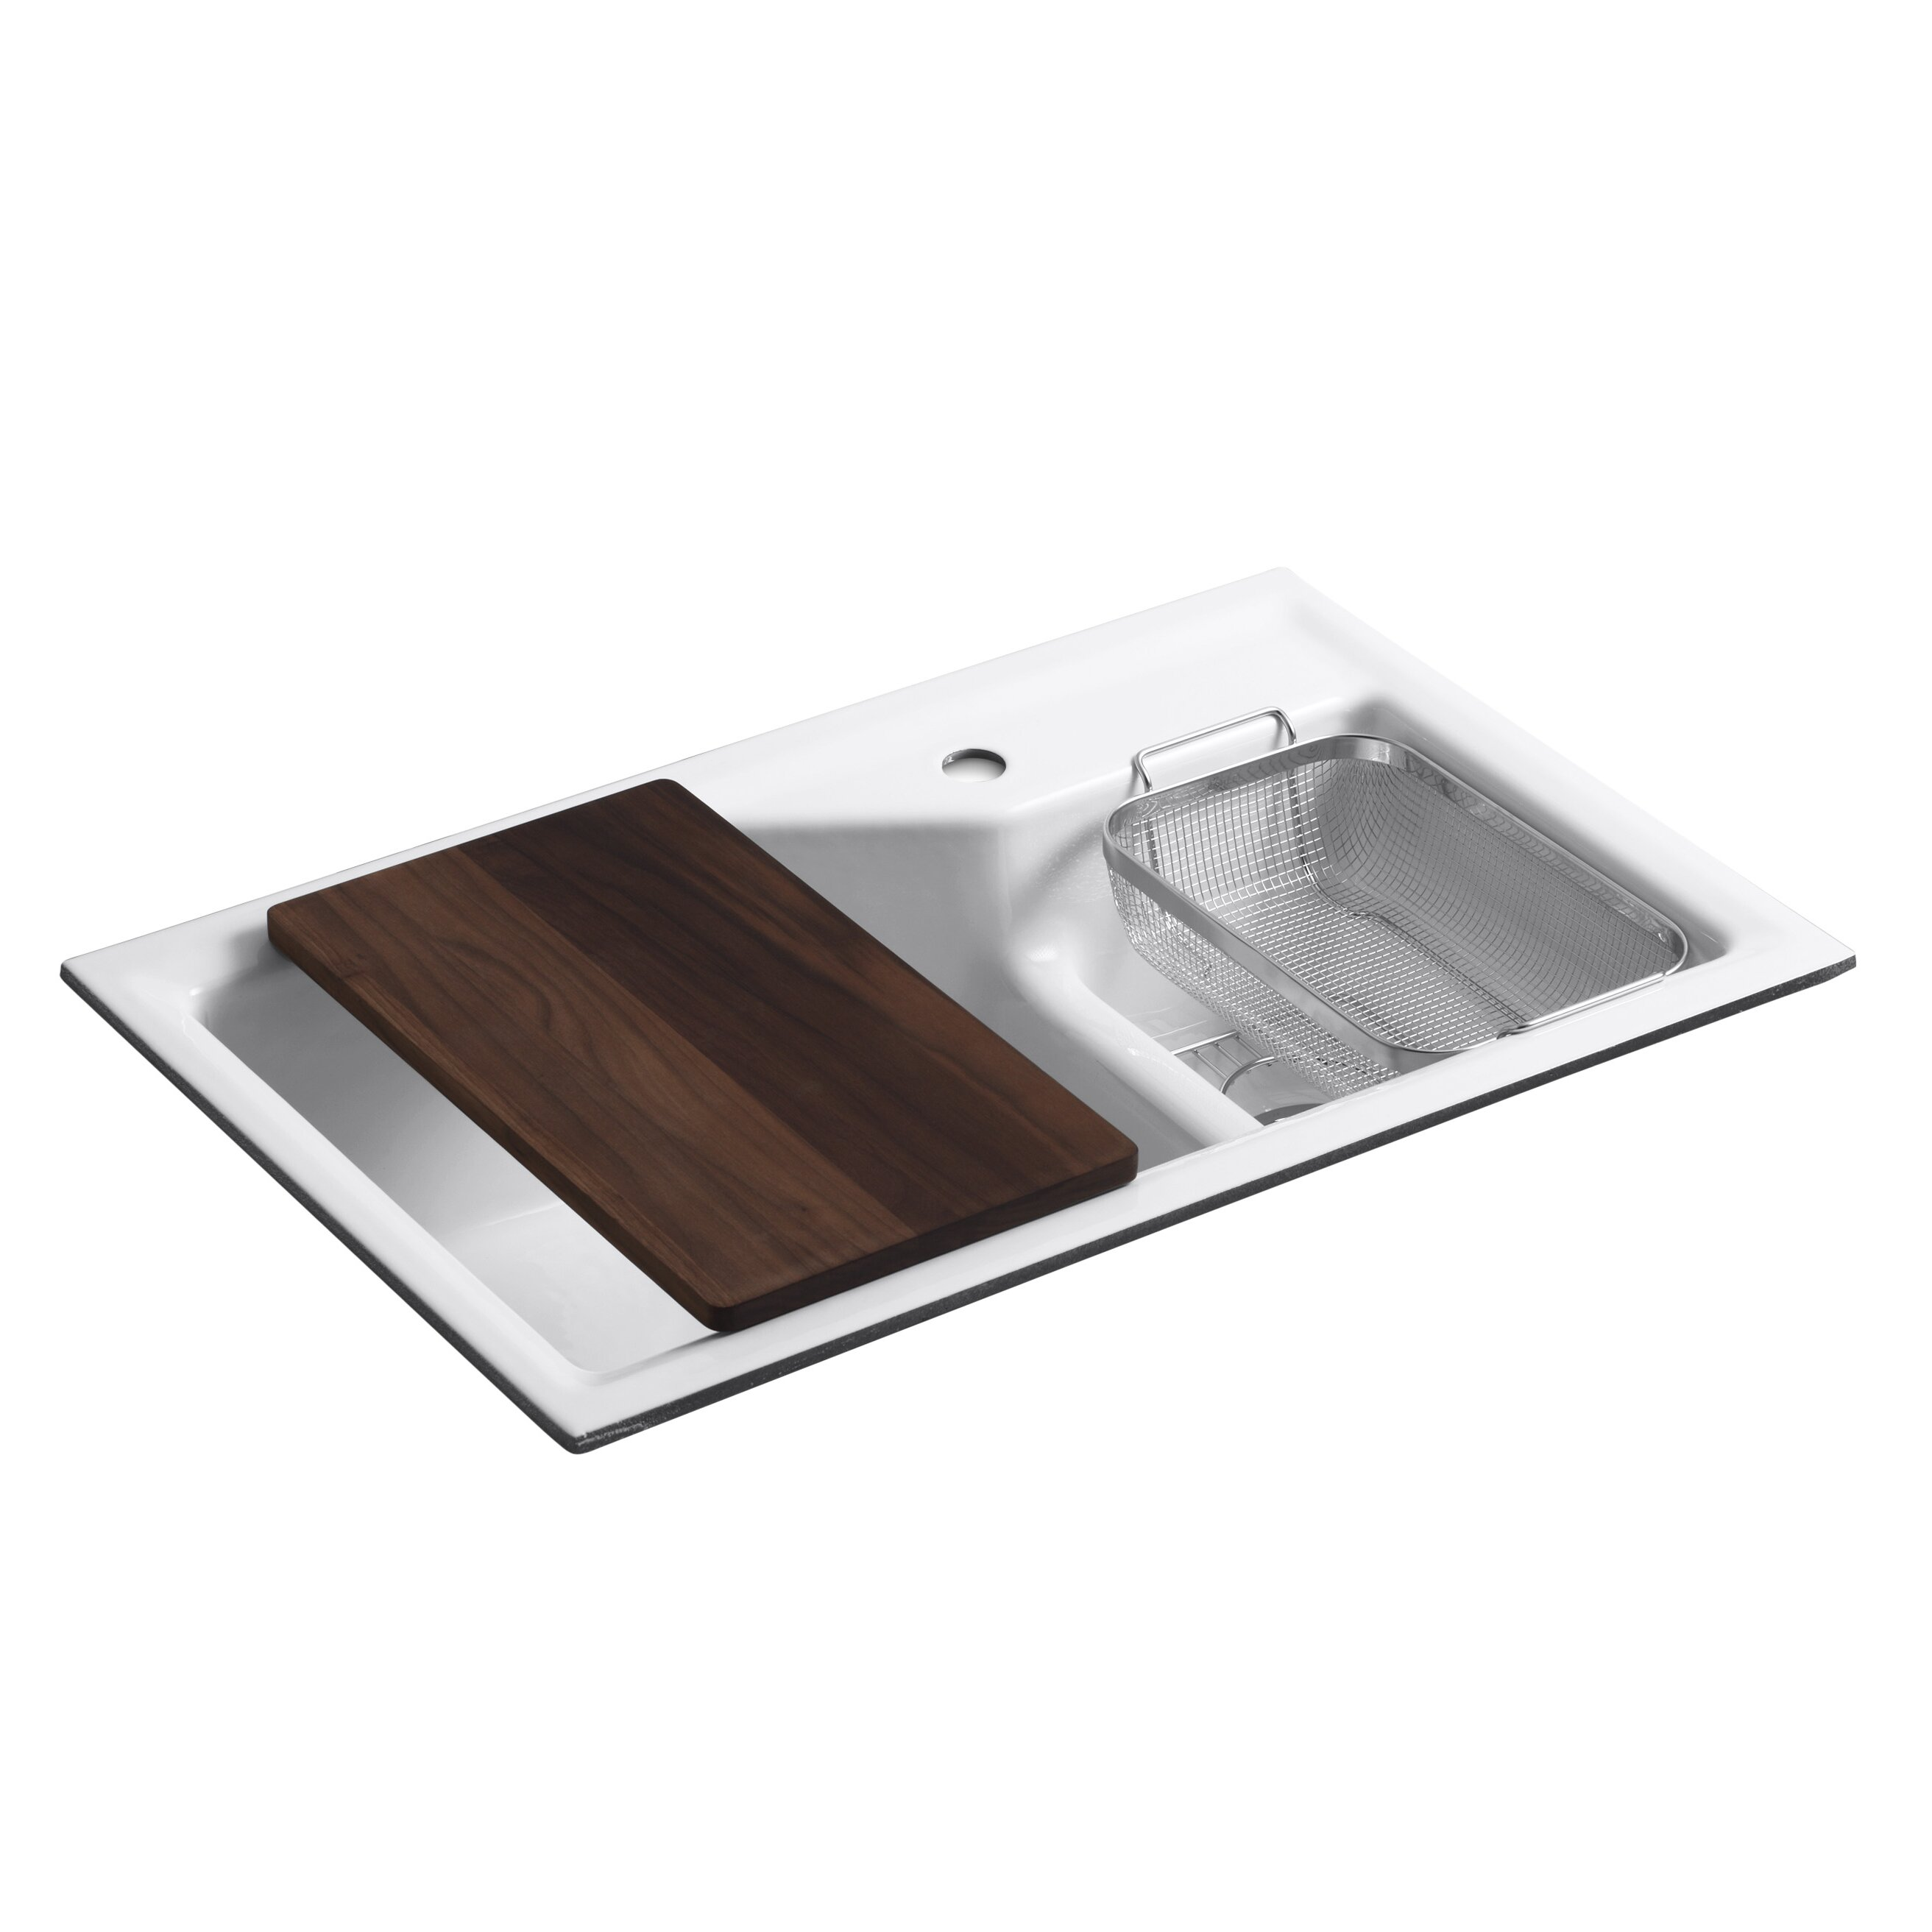 Small Double Kitchen Sinks Kohler Indio 33 X 21 1 8 X 9 3 4 Under Mount Smart Divide Large